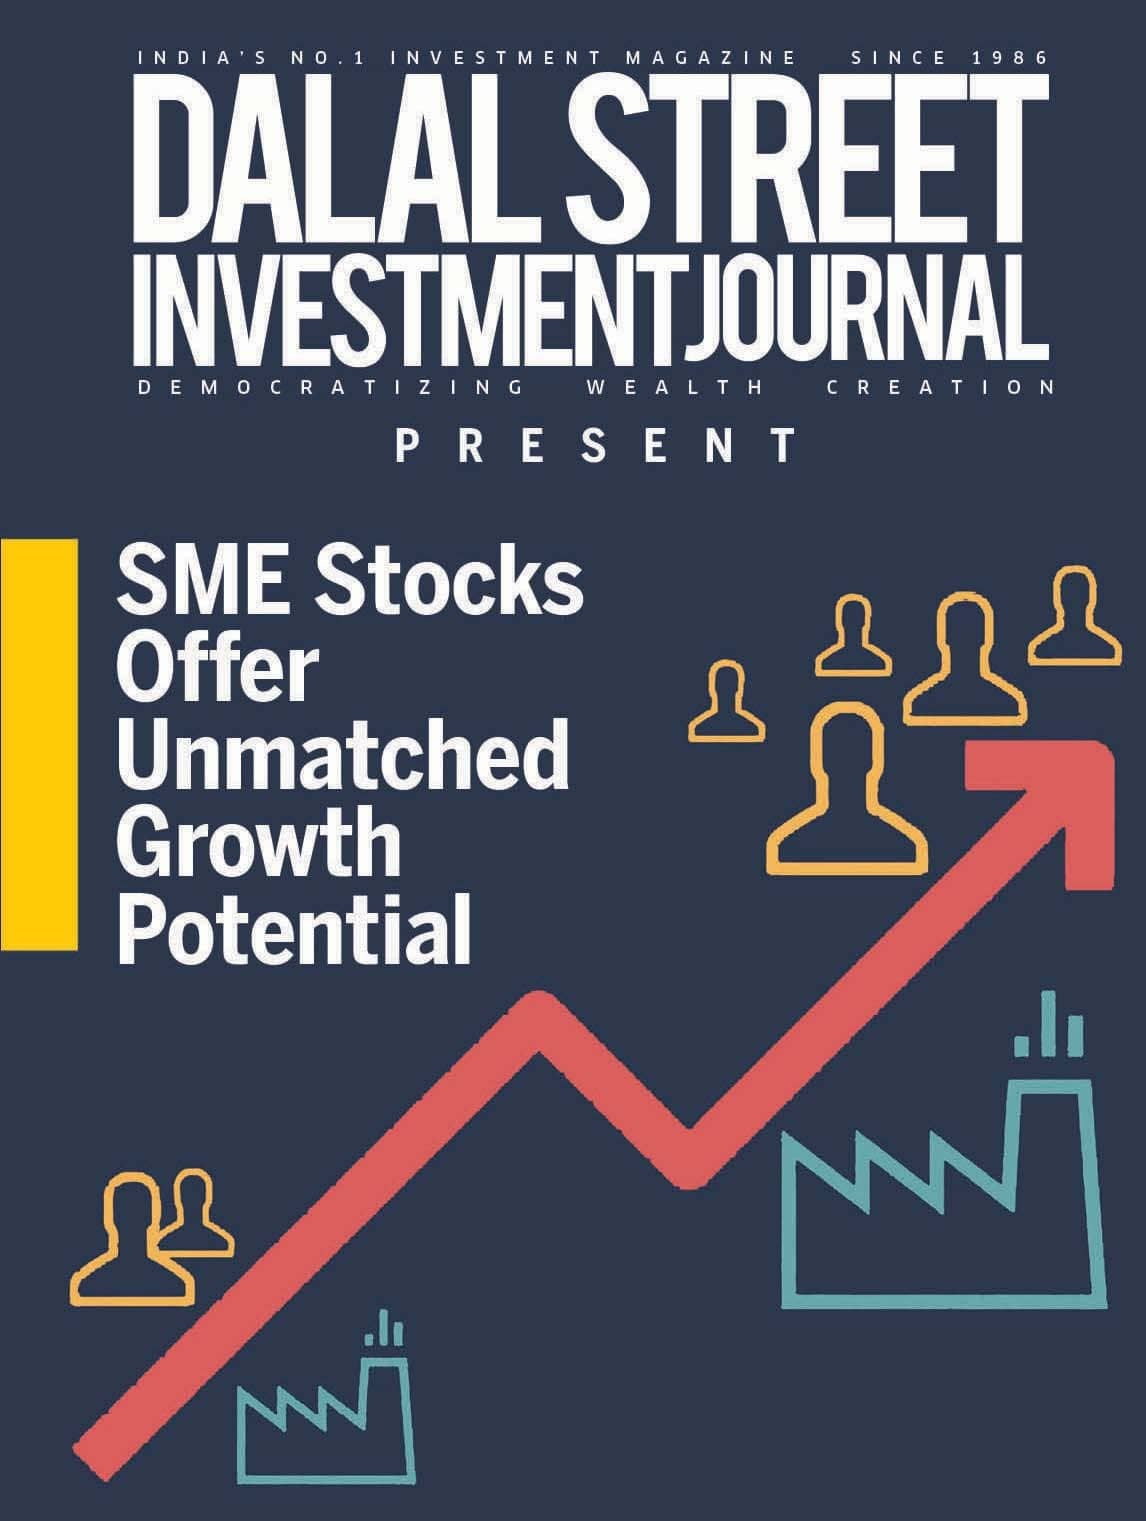 SME Stocks Offer Unmatched Growth Potential